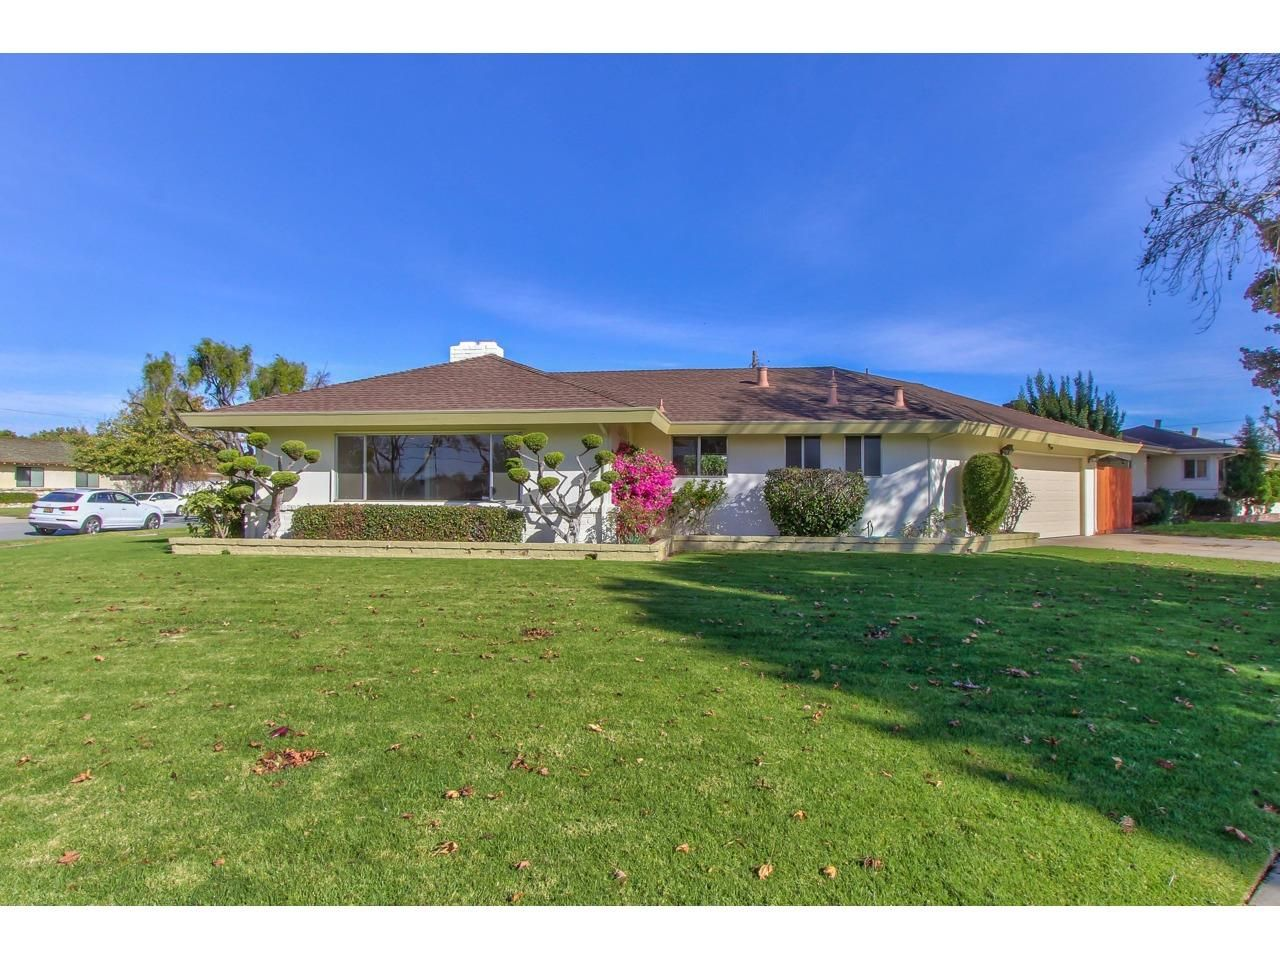 166 rio verde dr salinas just listed in south salinas